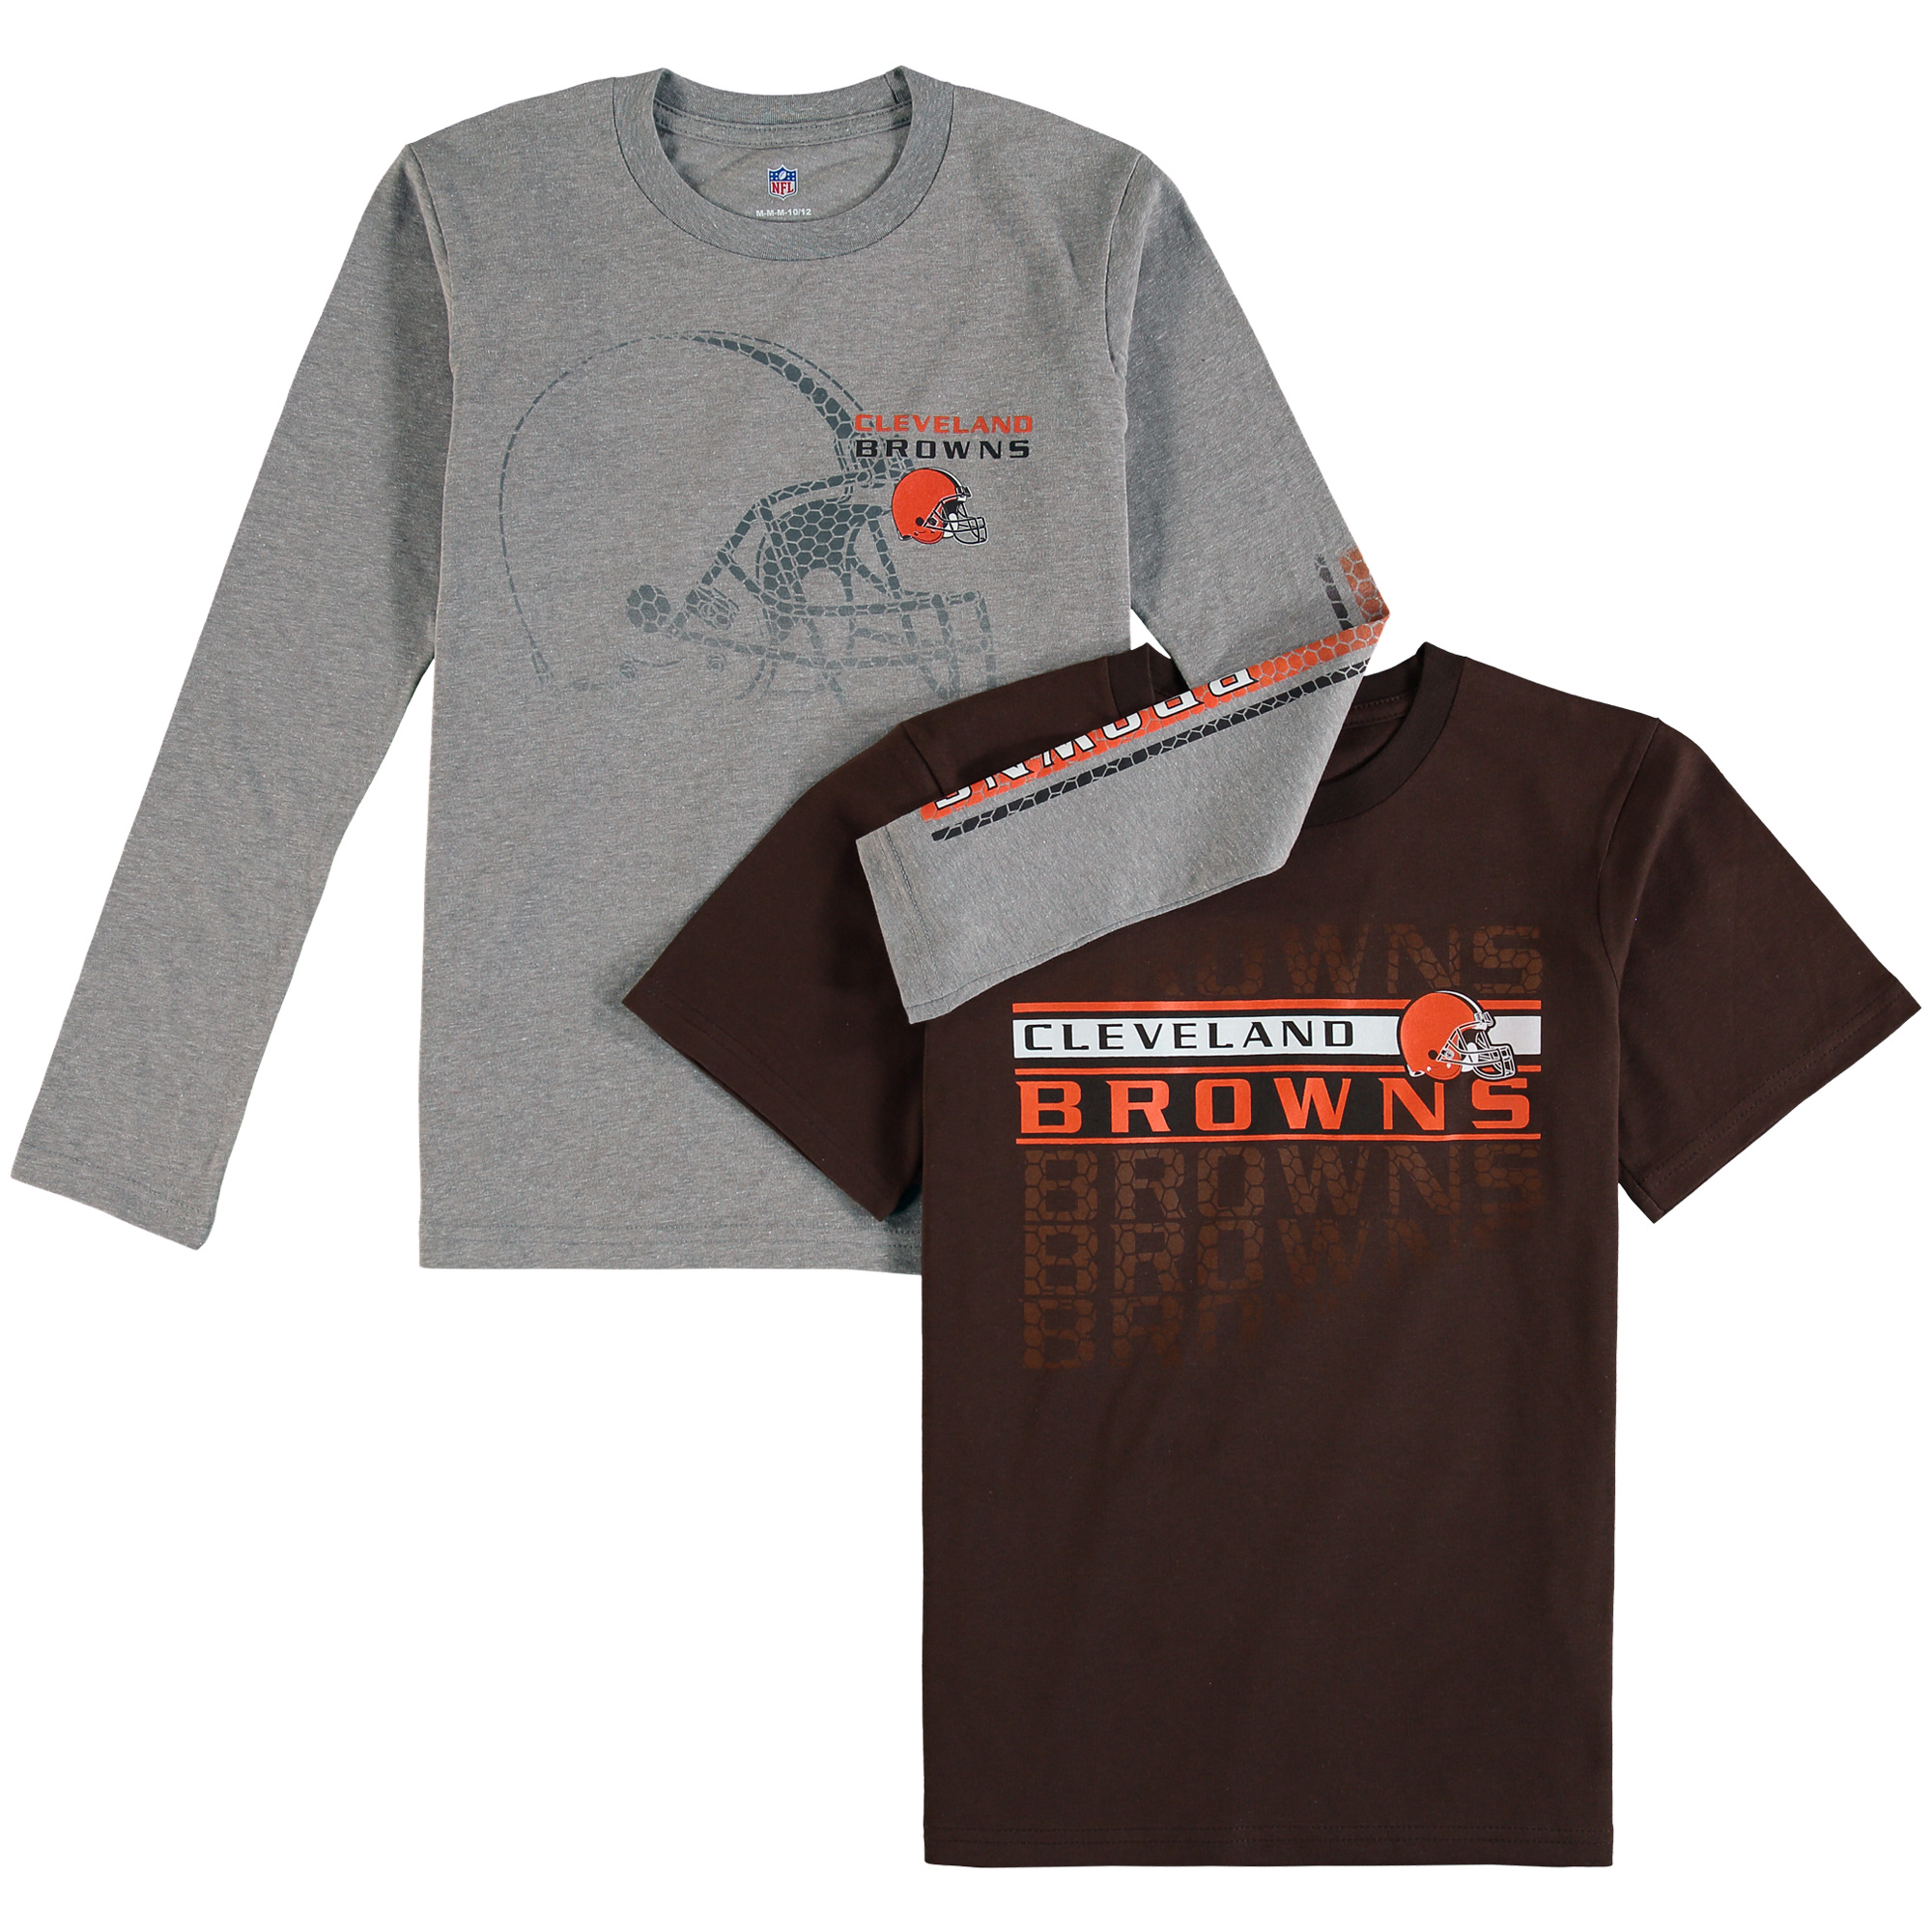 Cleveland Browns Youth Interface T-Shirt Combo Pack - Brown/Gray - Yth L